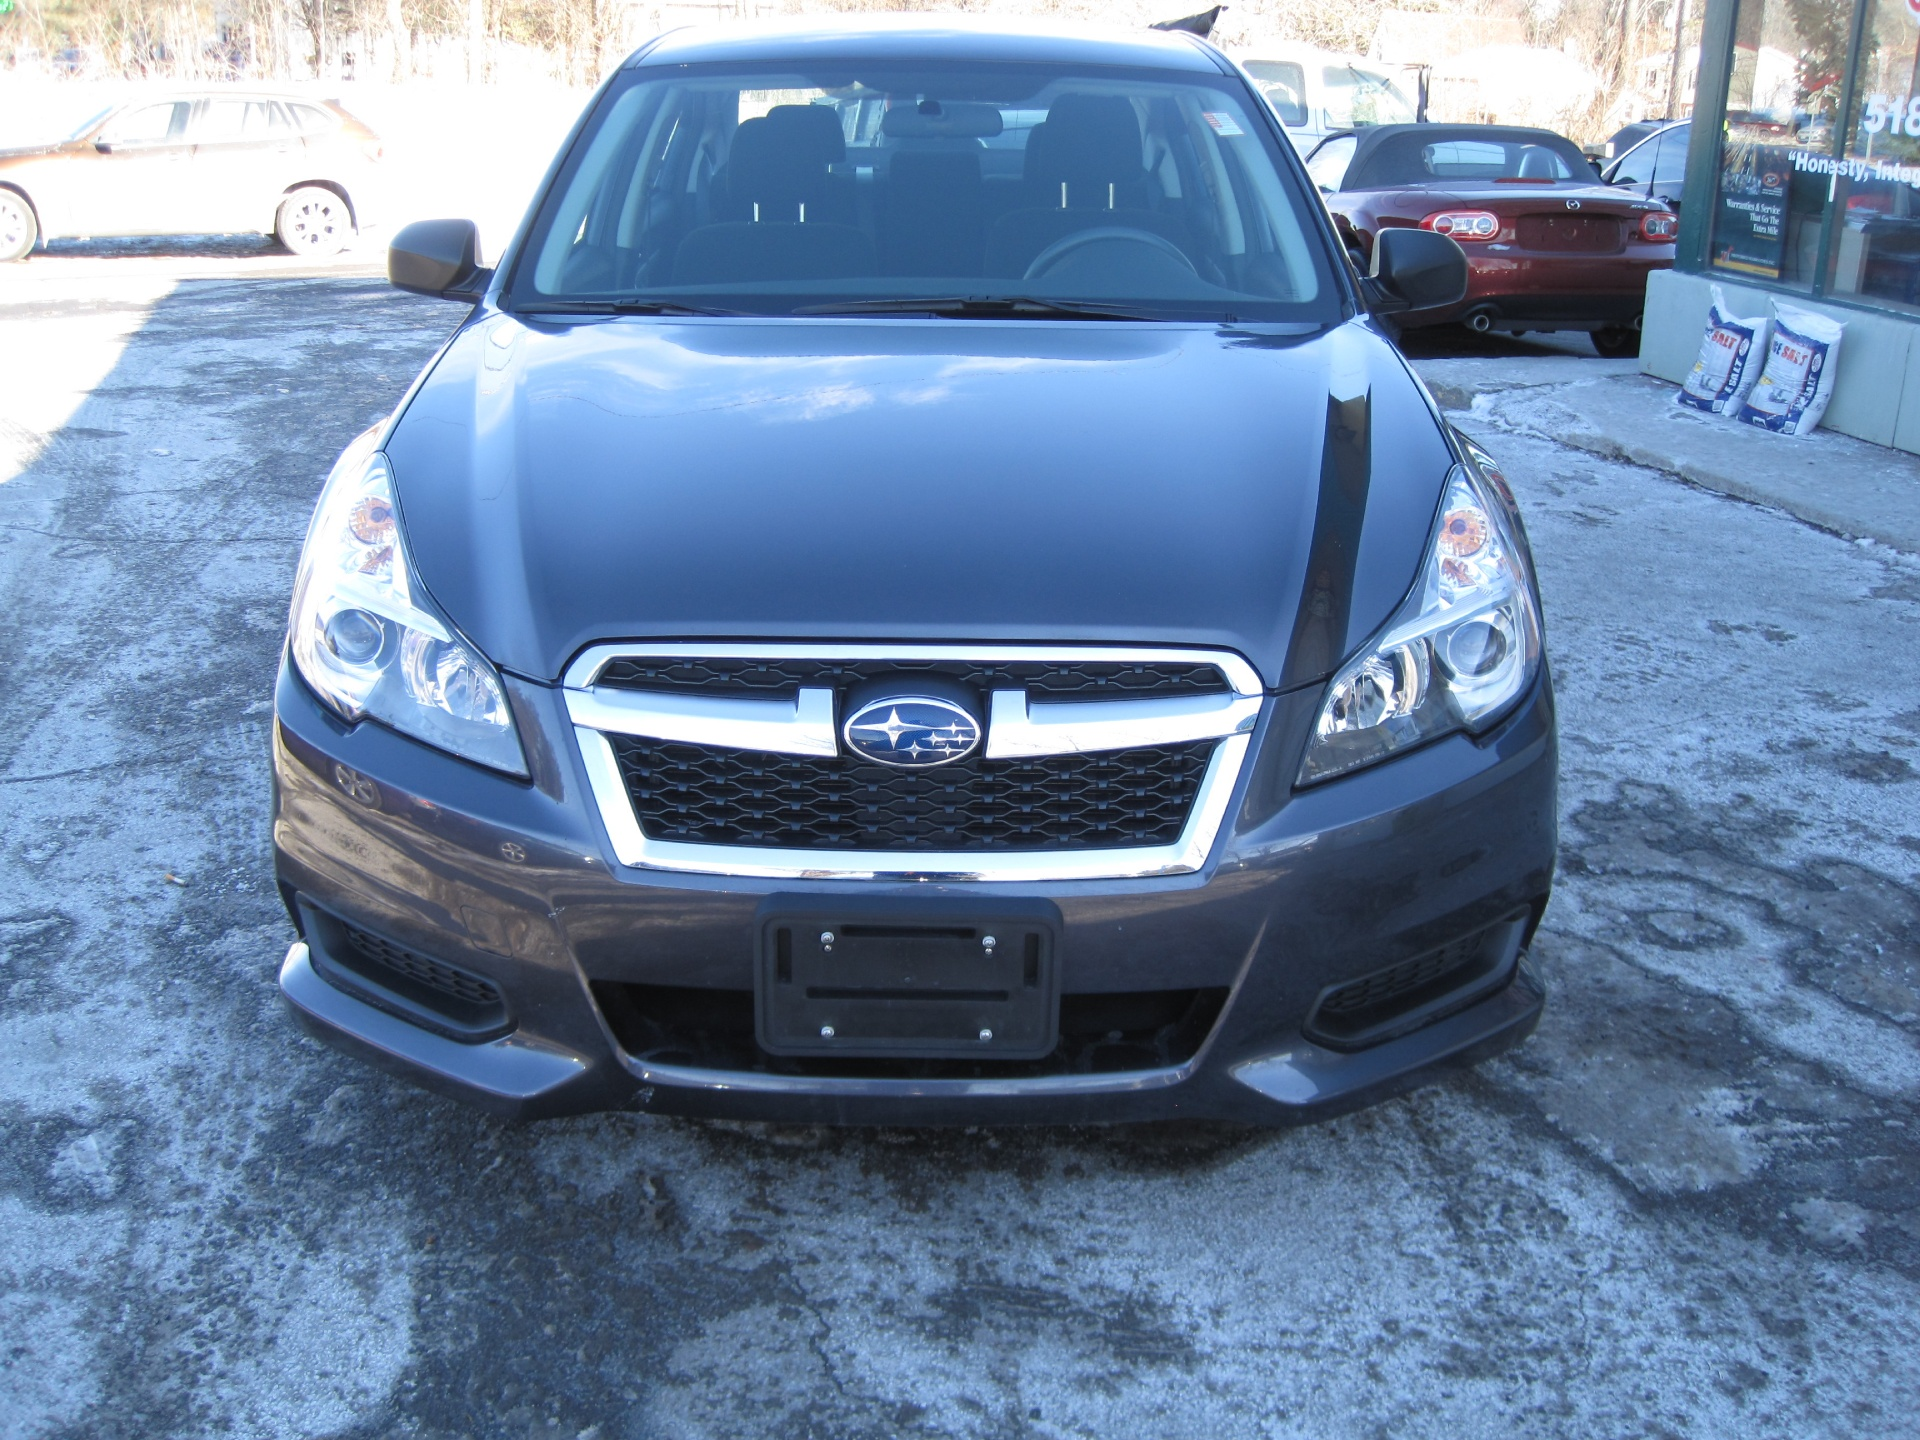 2013 subaru legacy automatic 1 owner very clean stock. Black Bedroom Furniture Sets. Home Design Ideas